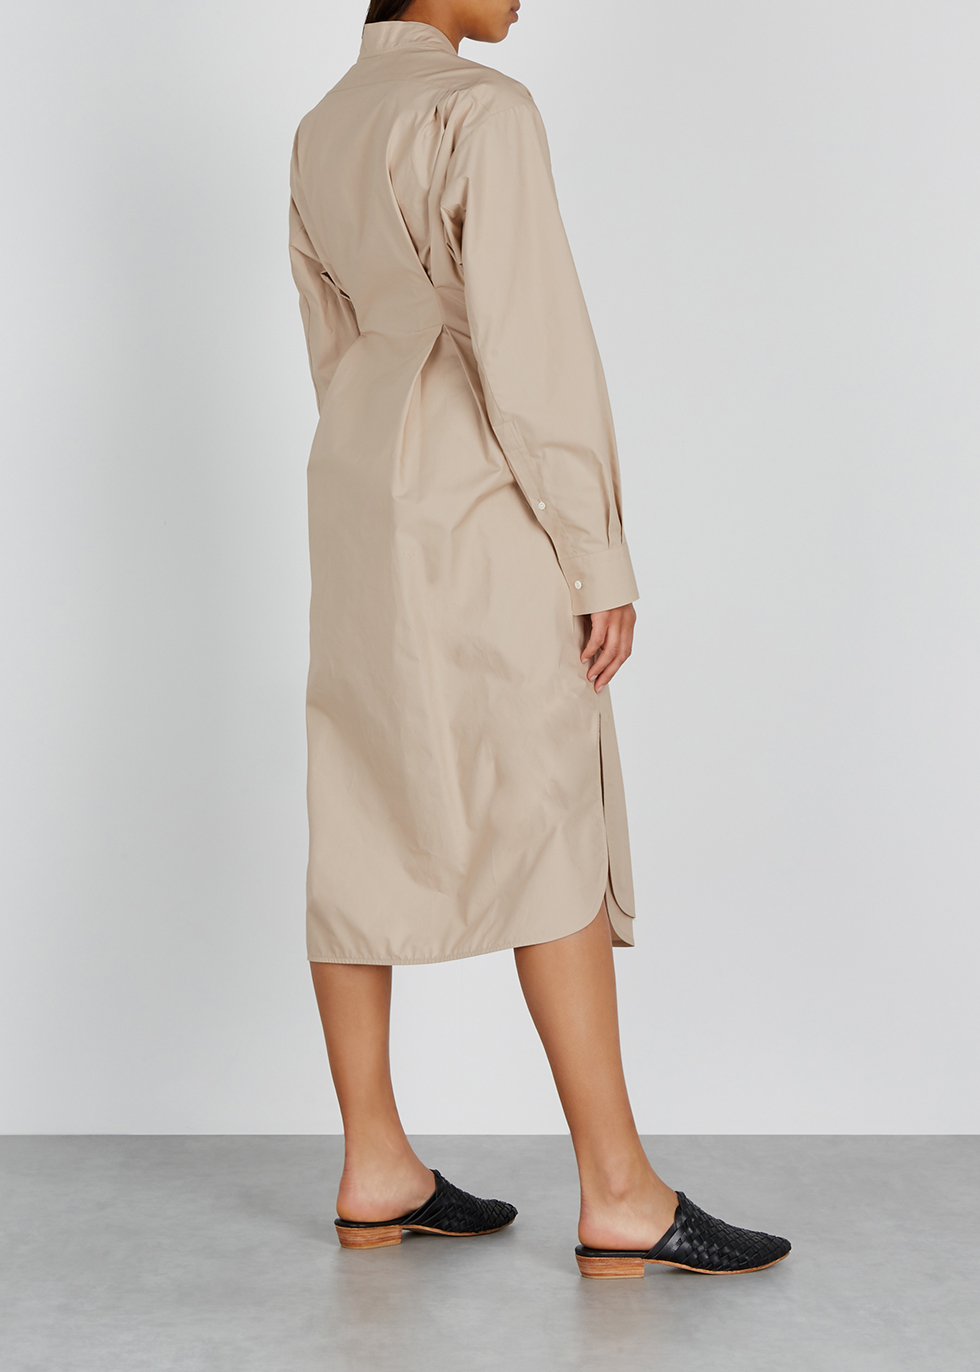 Camel asymmetric poplin midi shirt dress - Loewe